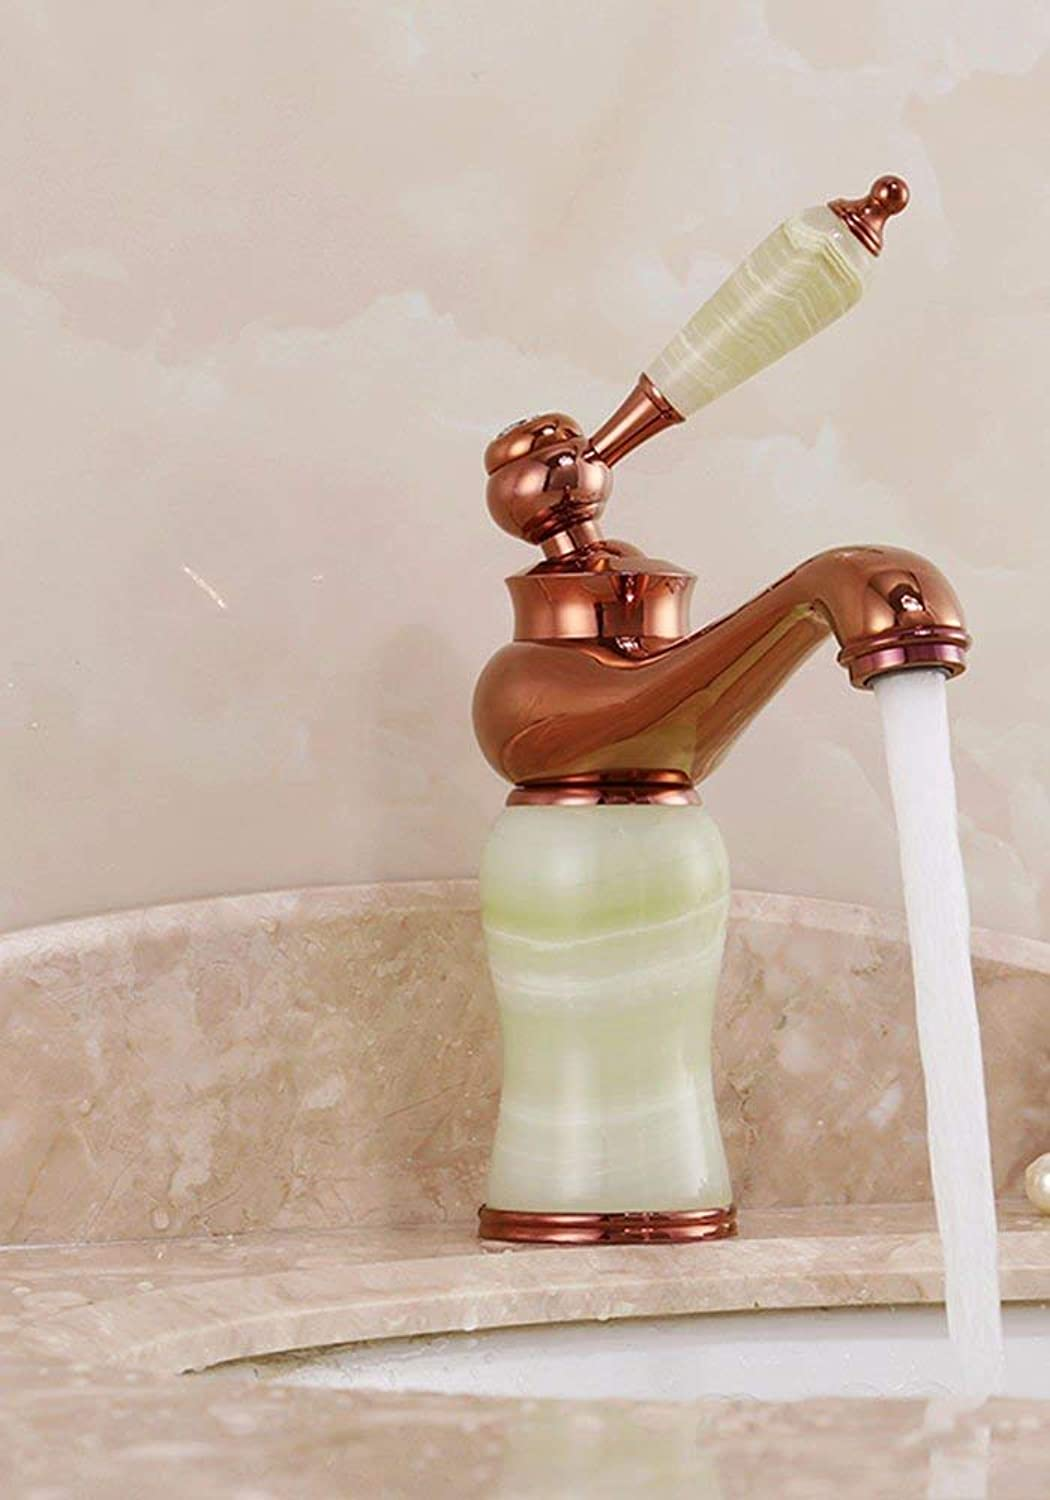 Hhgold The European style copper gold jade basin hot and cold water tap